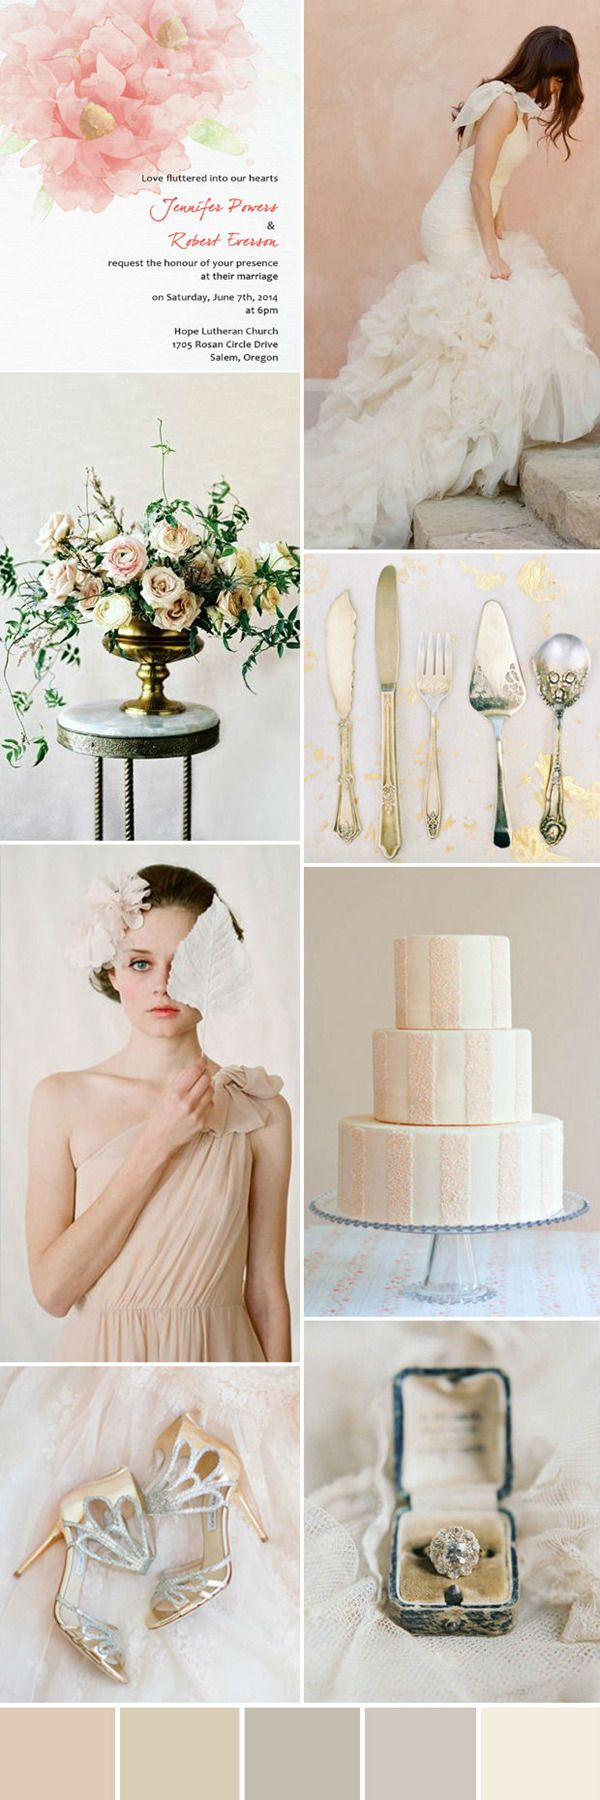 seven wonderful wedding color ideas in shades of pink | Blush ...